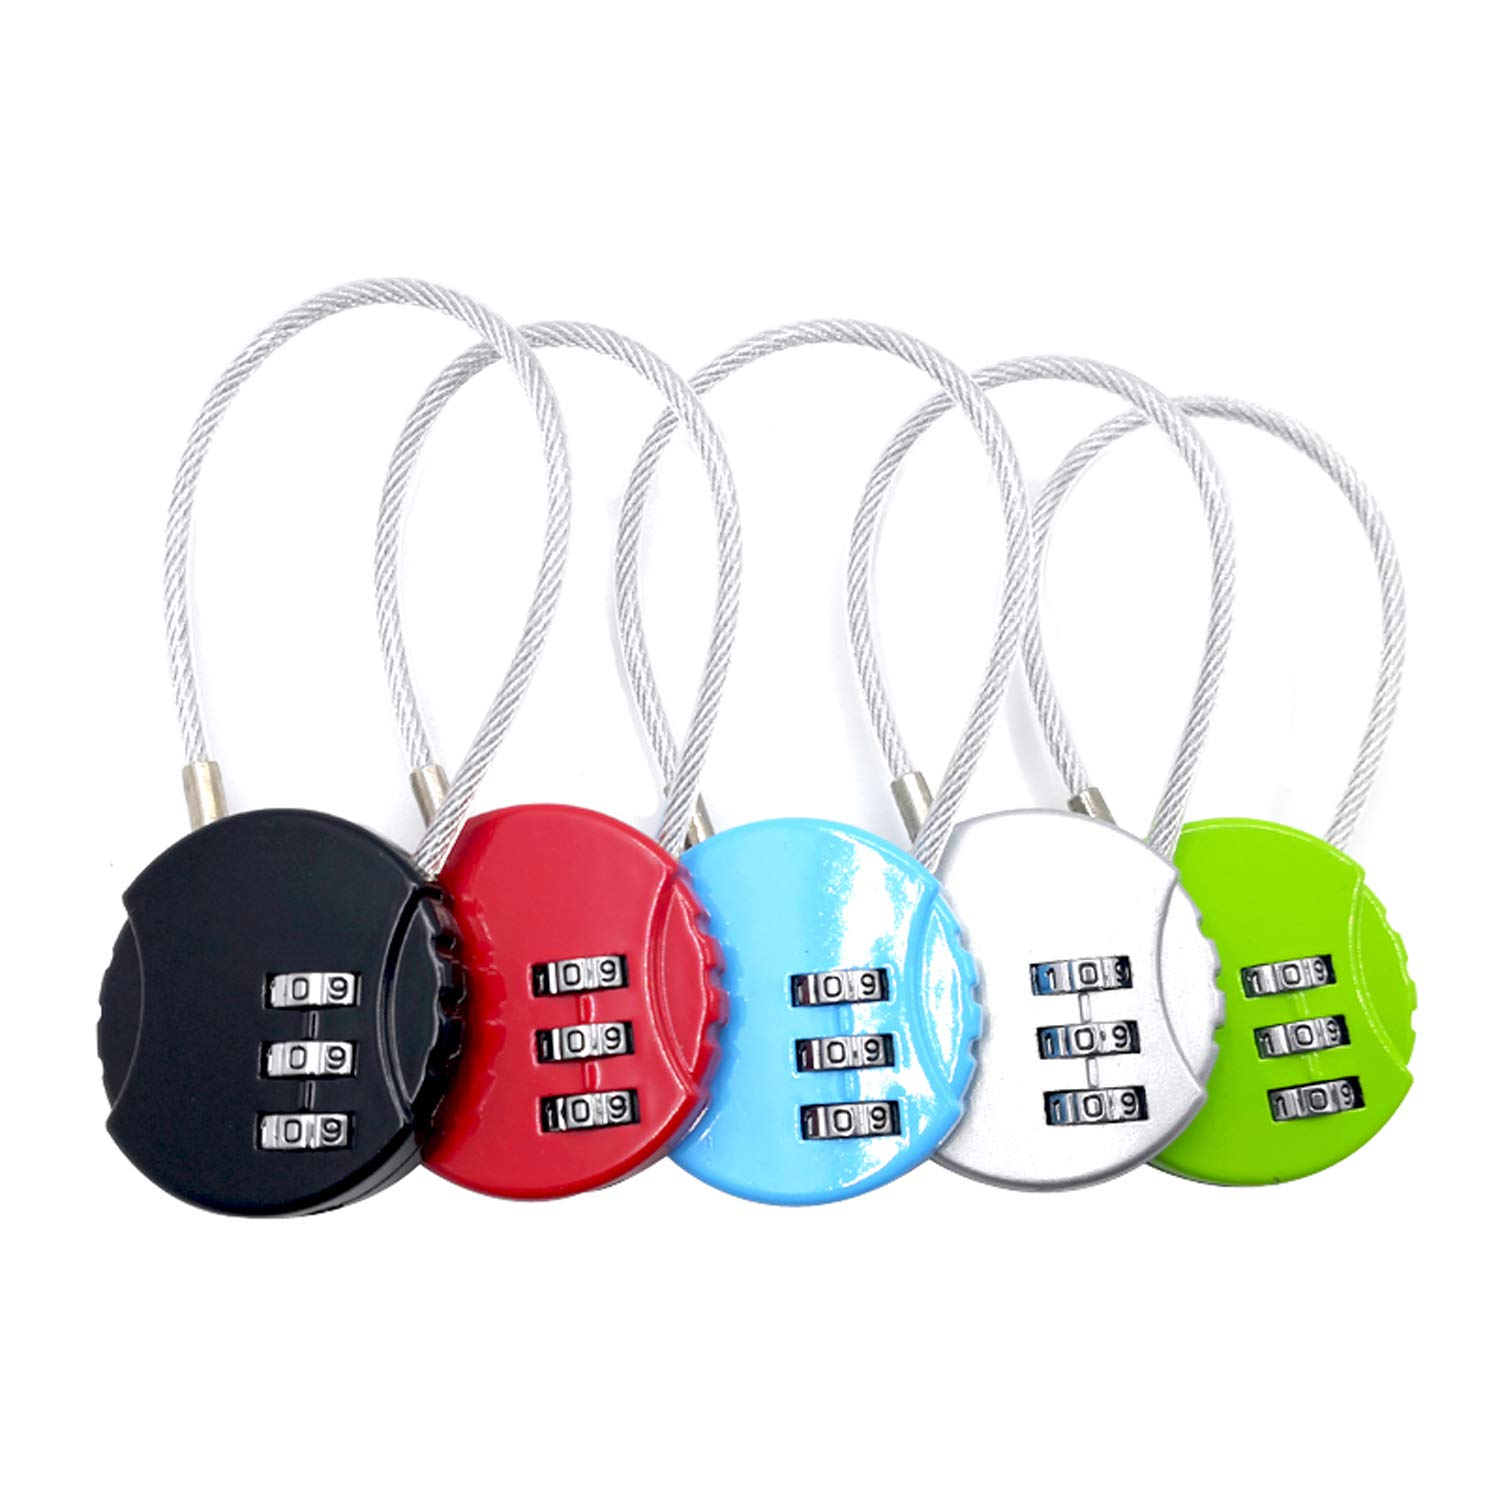 ZPLIUST 3-Digit Cable Luggage Locks Re-settable Combination, Alloy Body Color Locks (5Pack)